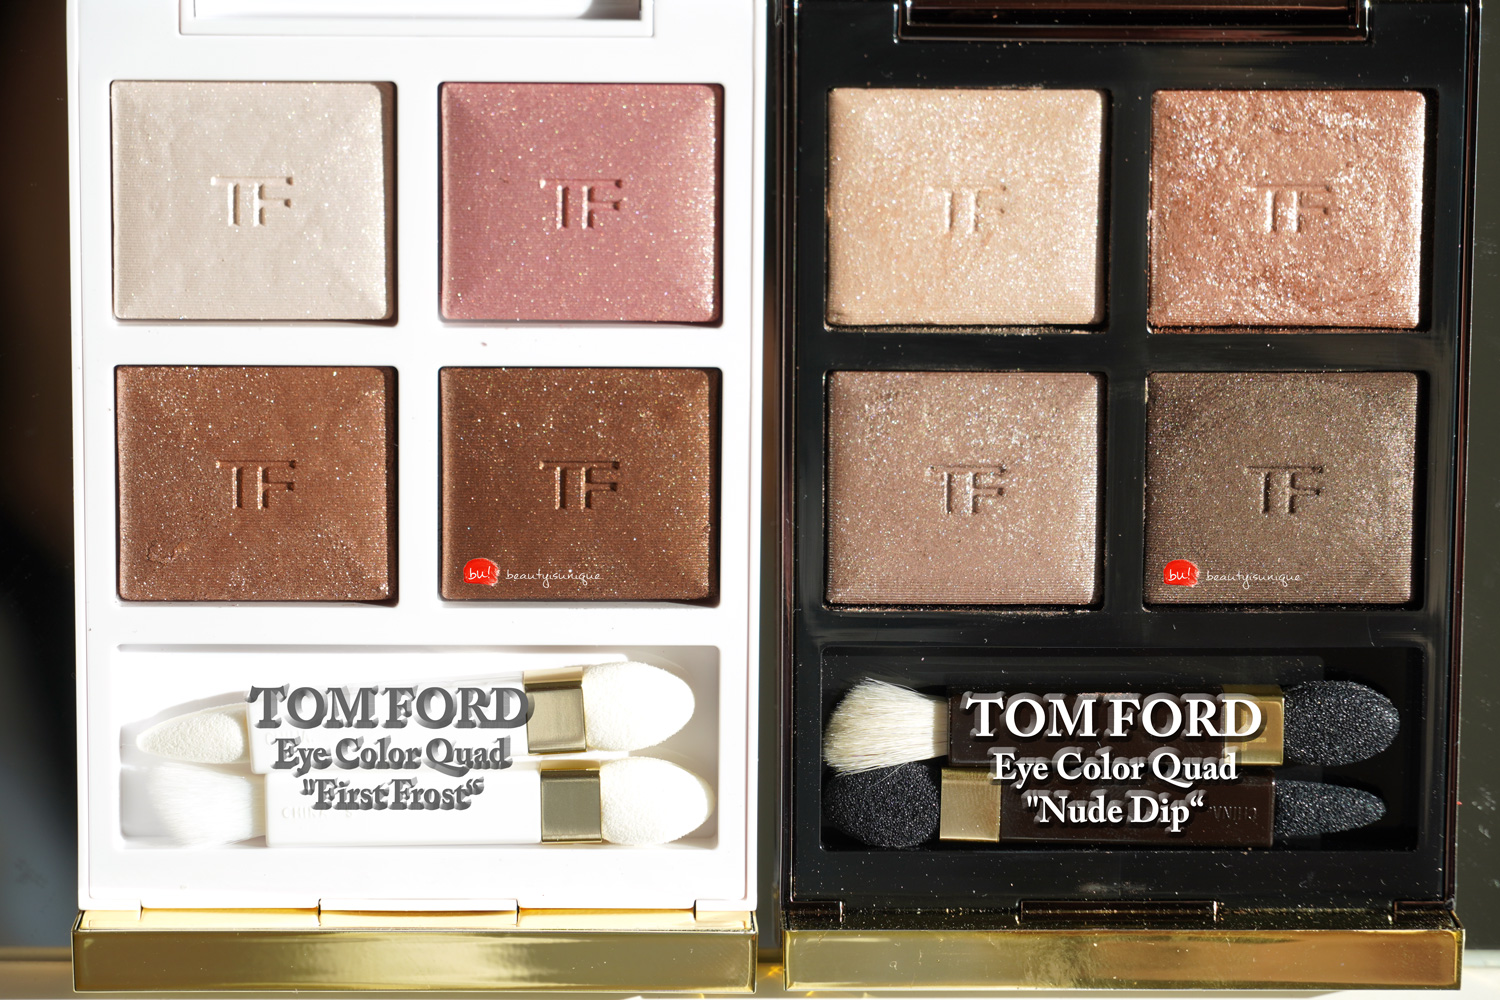 Tom-ford-first-frost-eye-color